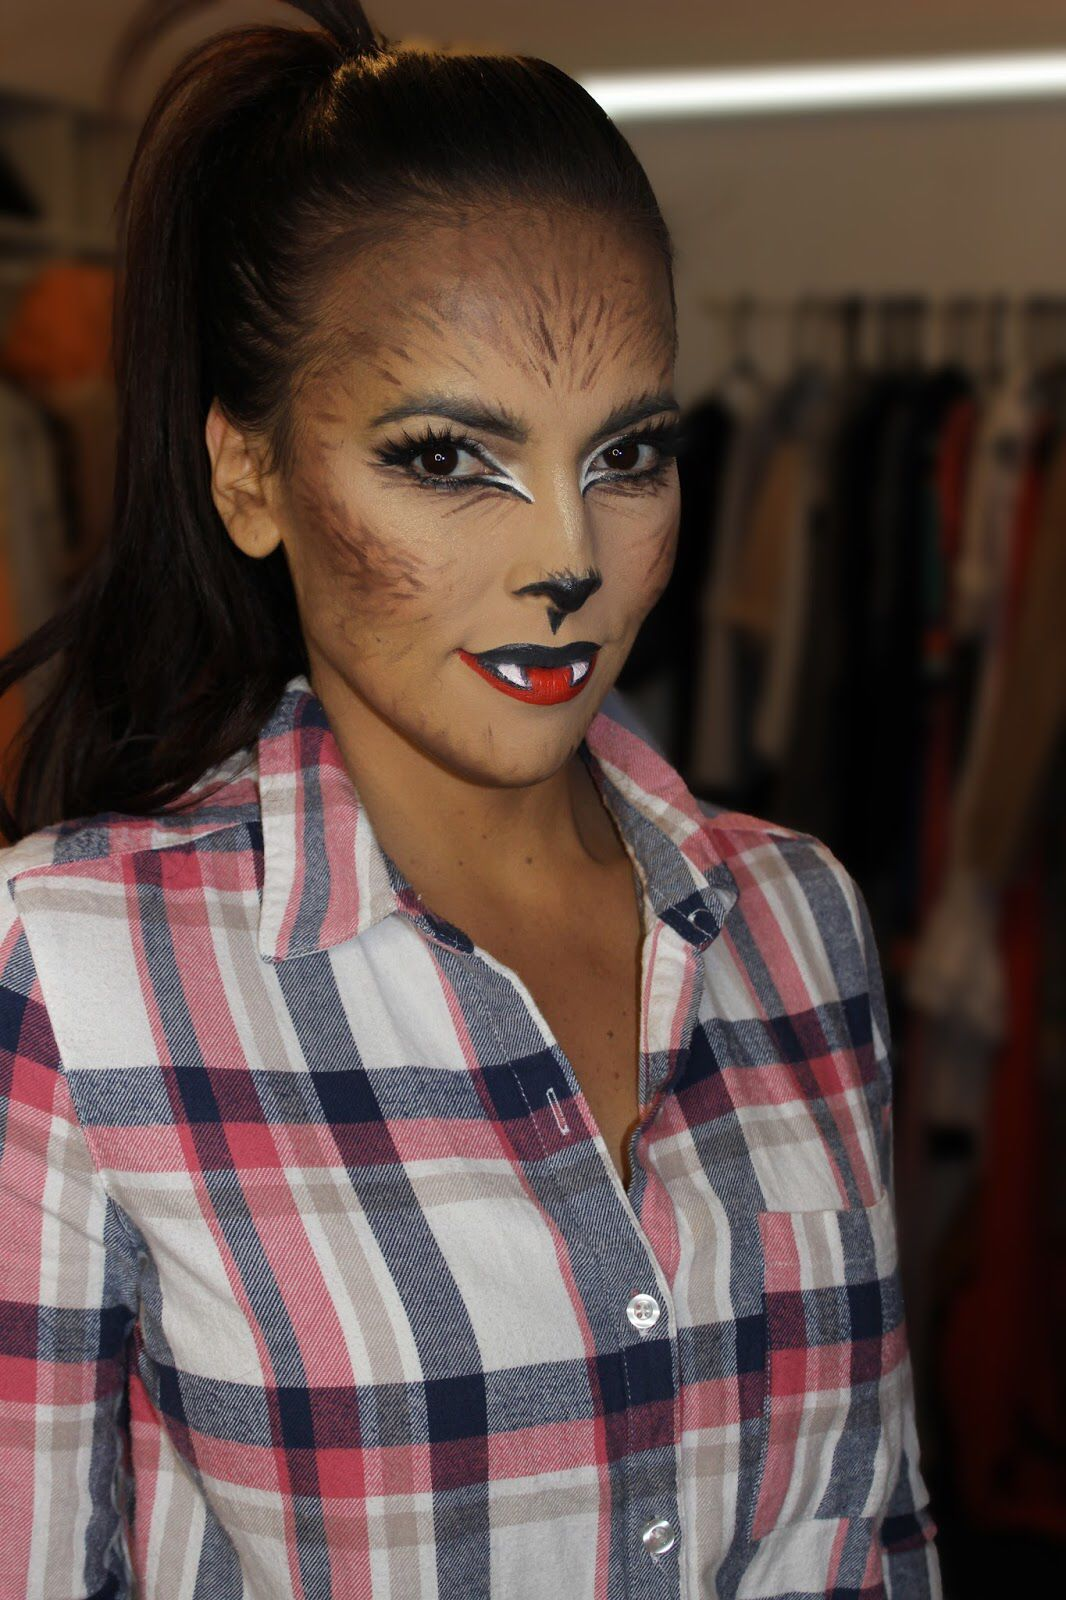 Cute werewolf halloween makeup. Something simple and the